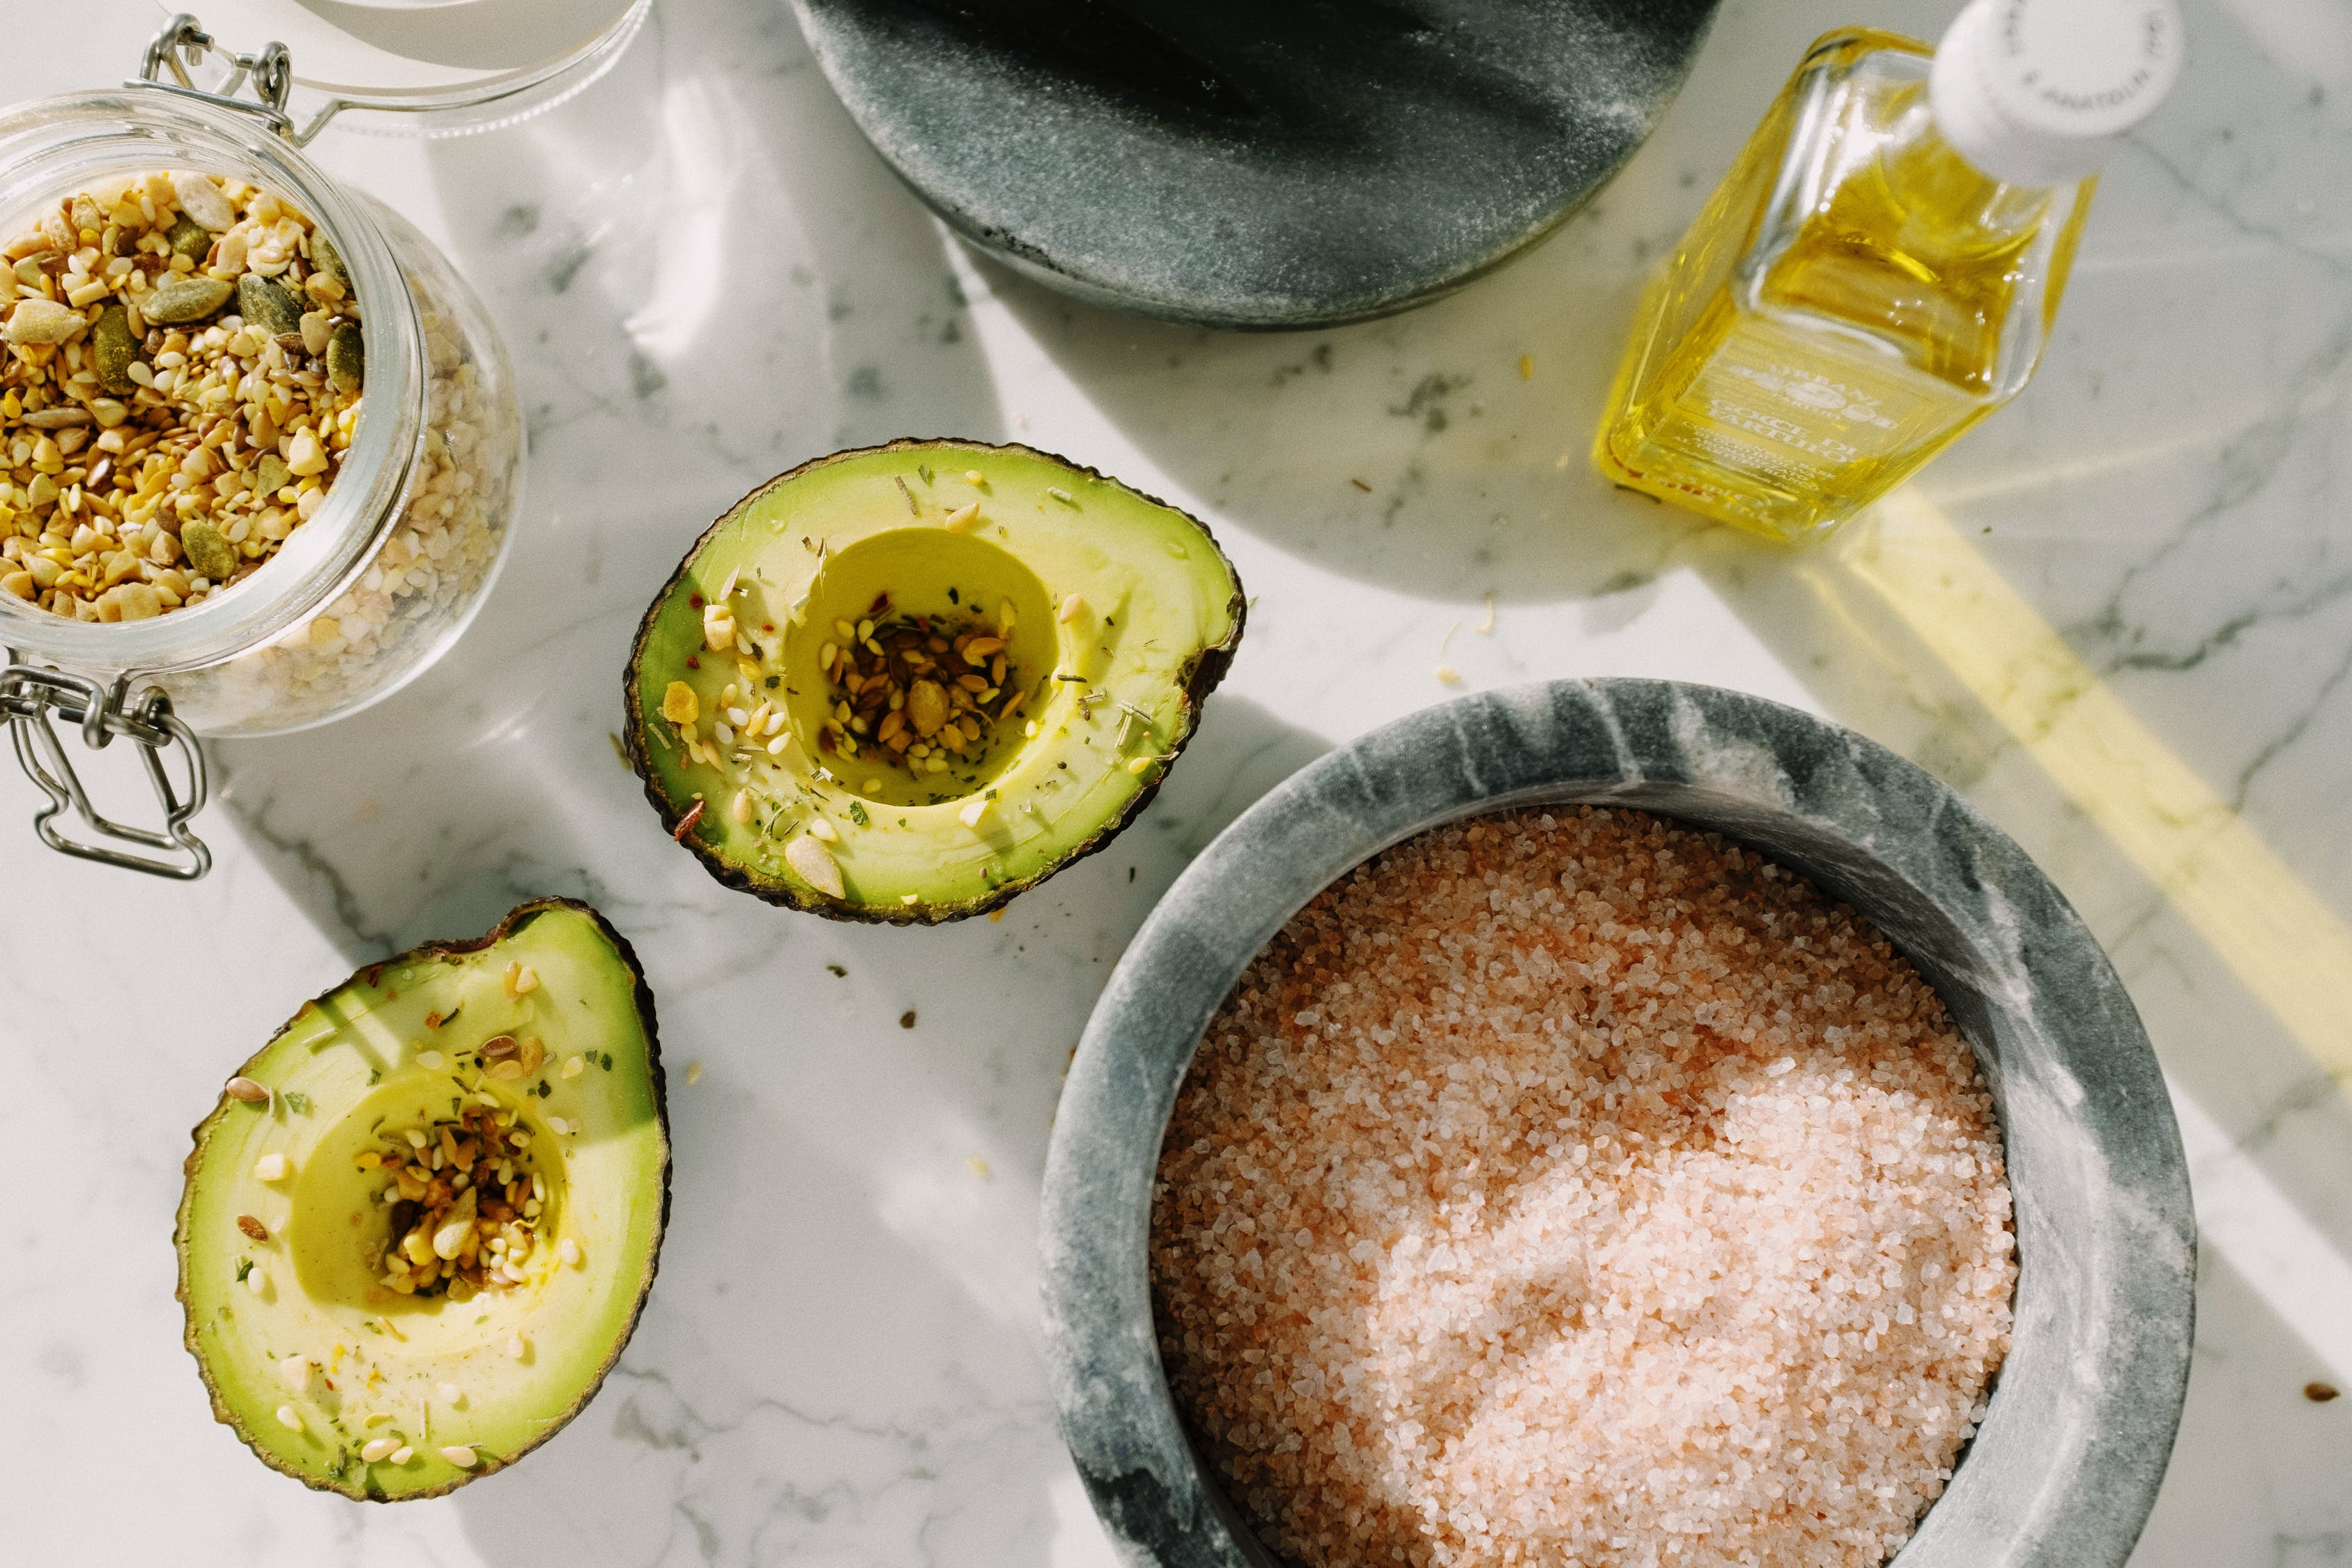 Fresh avocado halves with seed mix and other ingredients for healthy breakfast